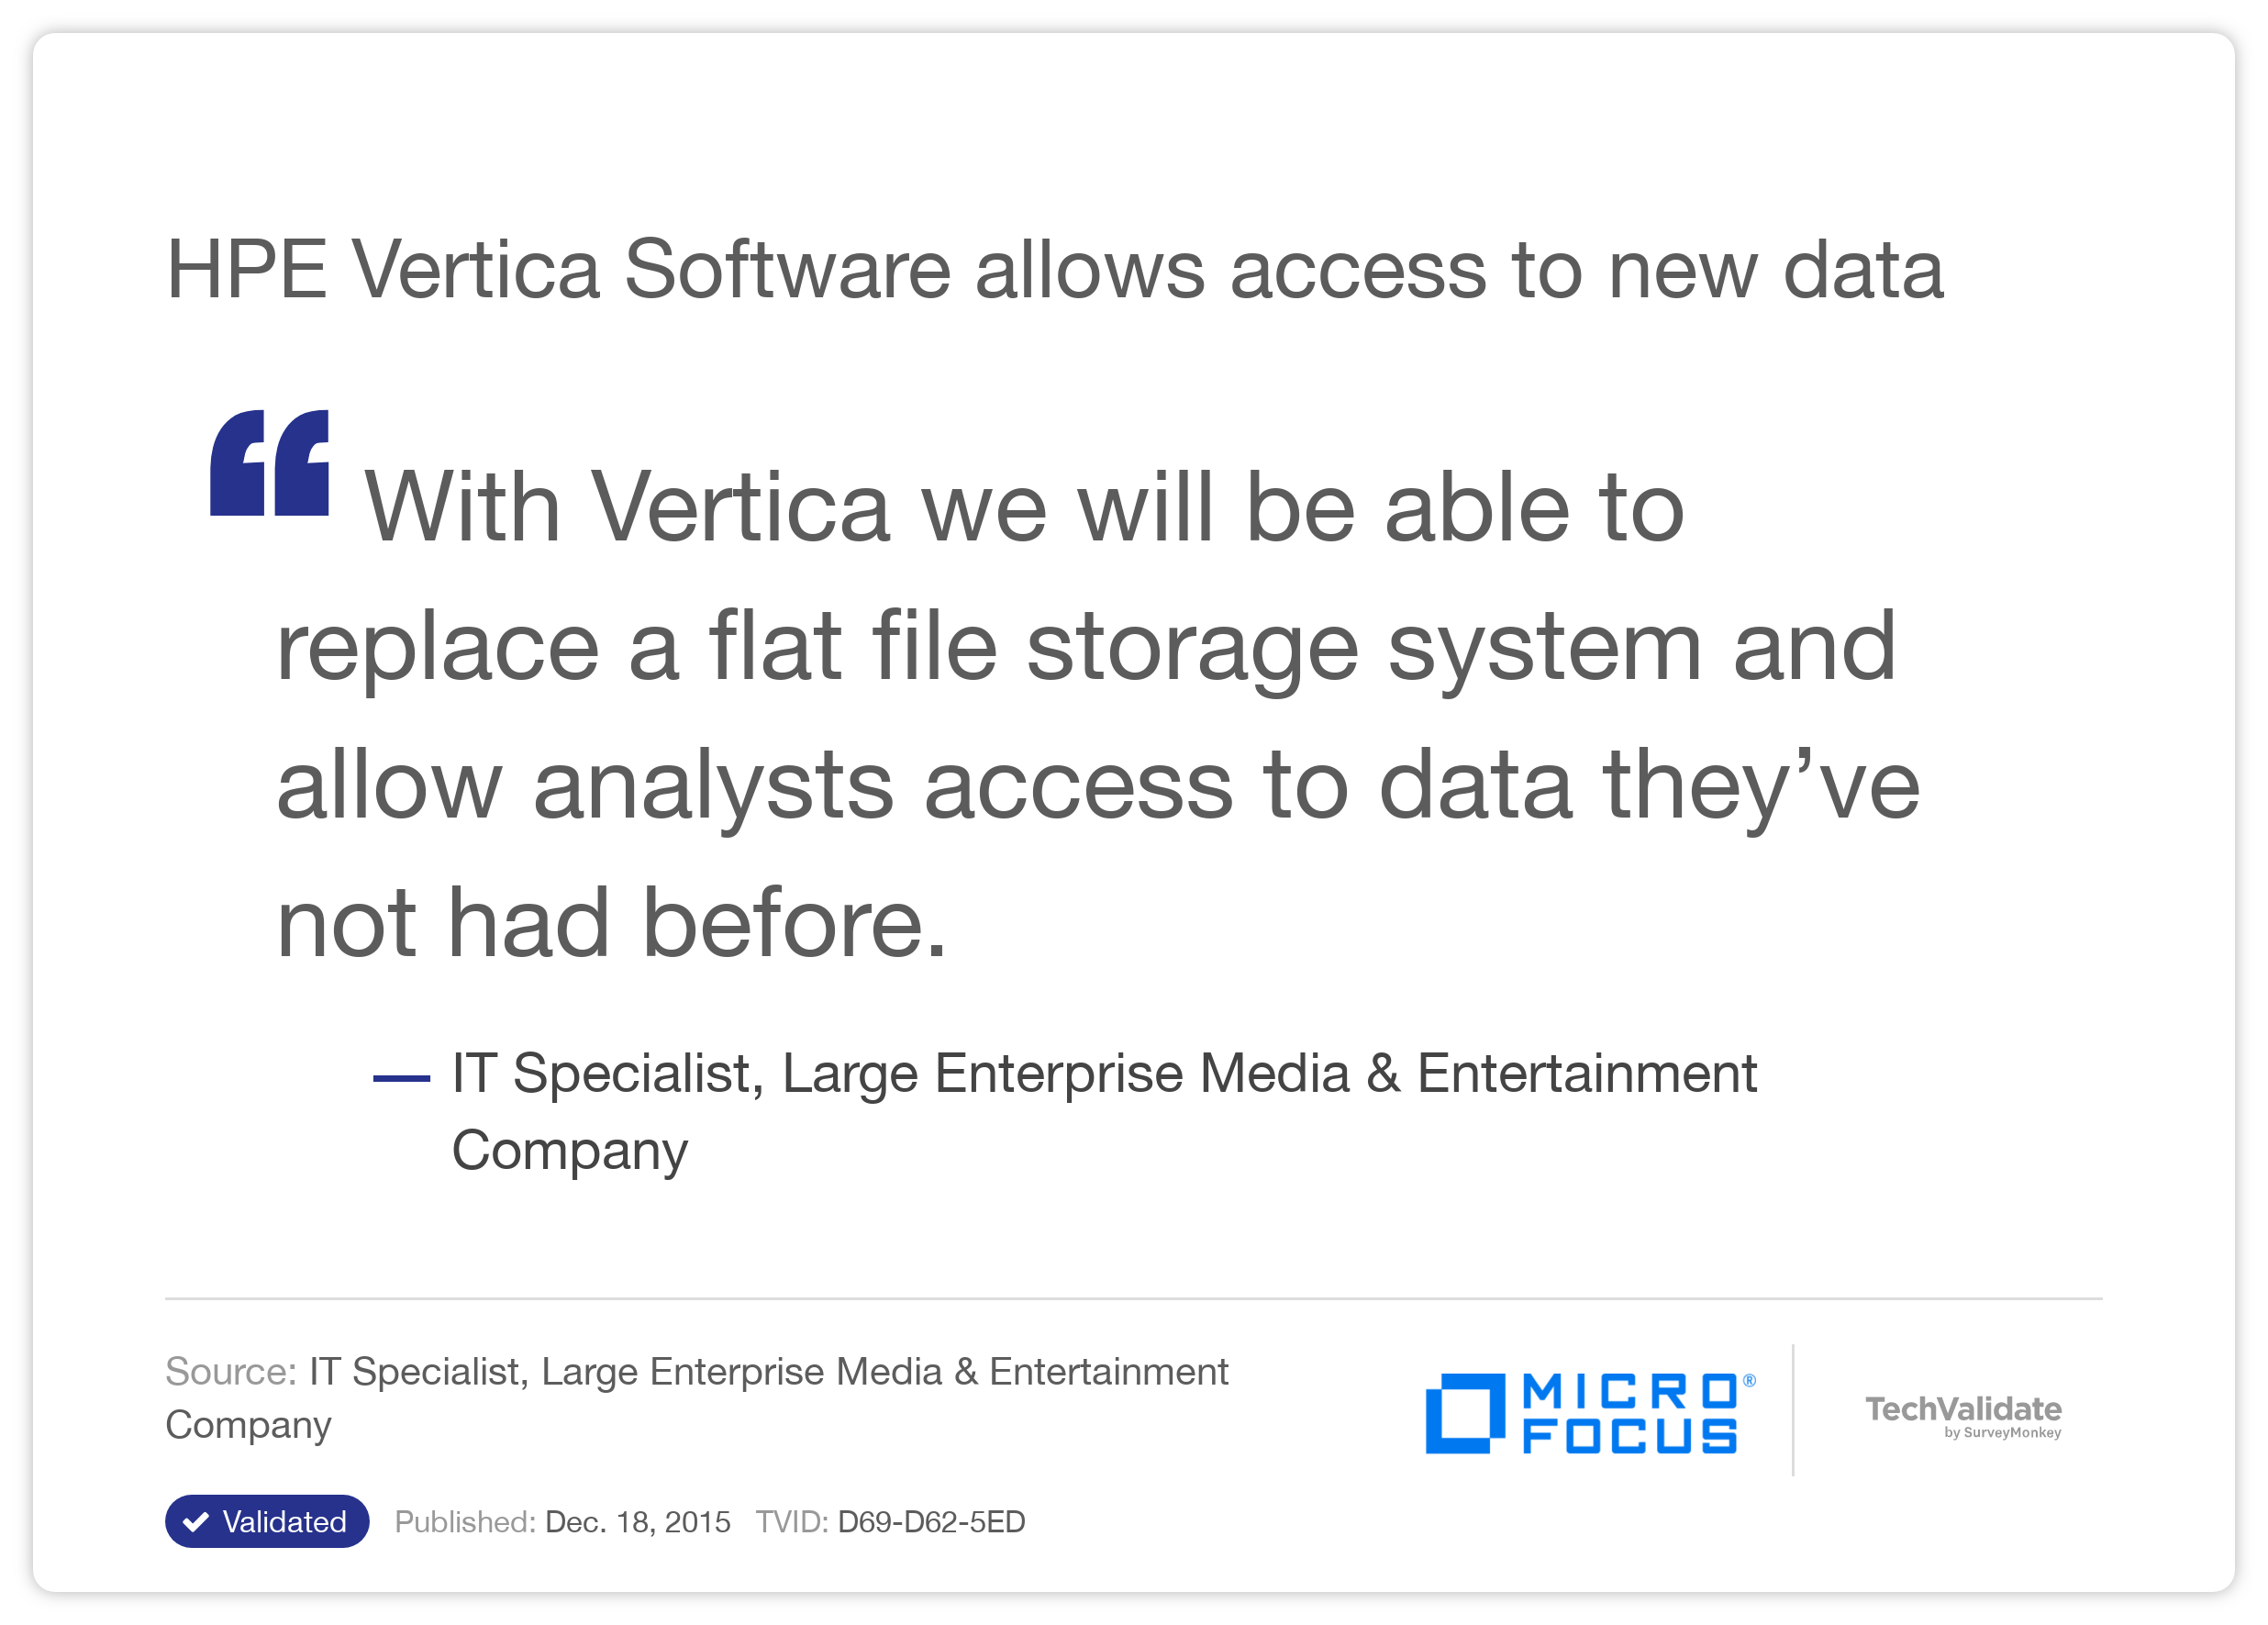 HP Vertica Software allows access to new data